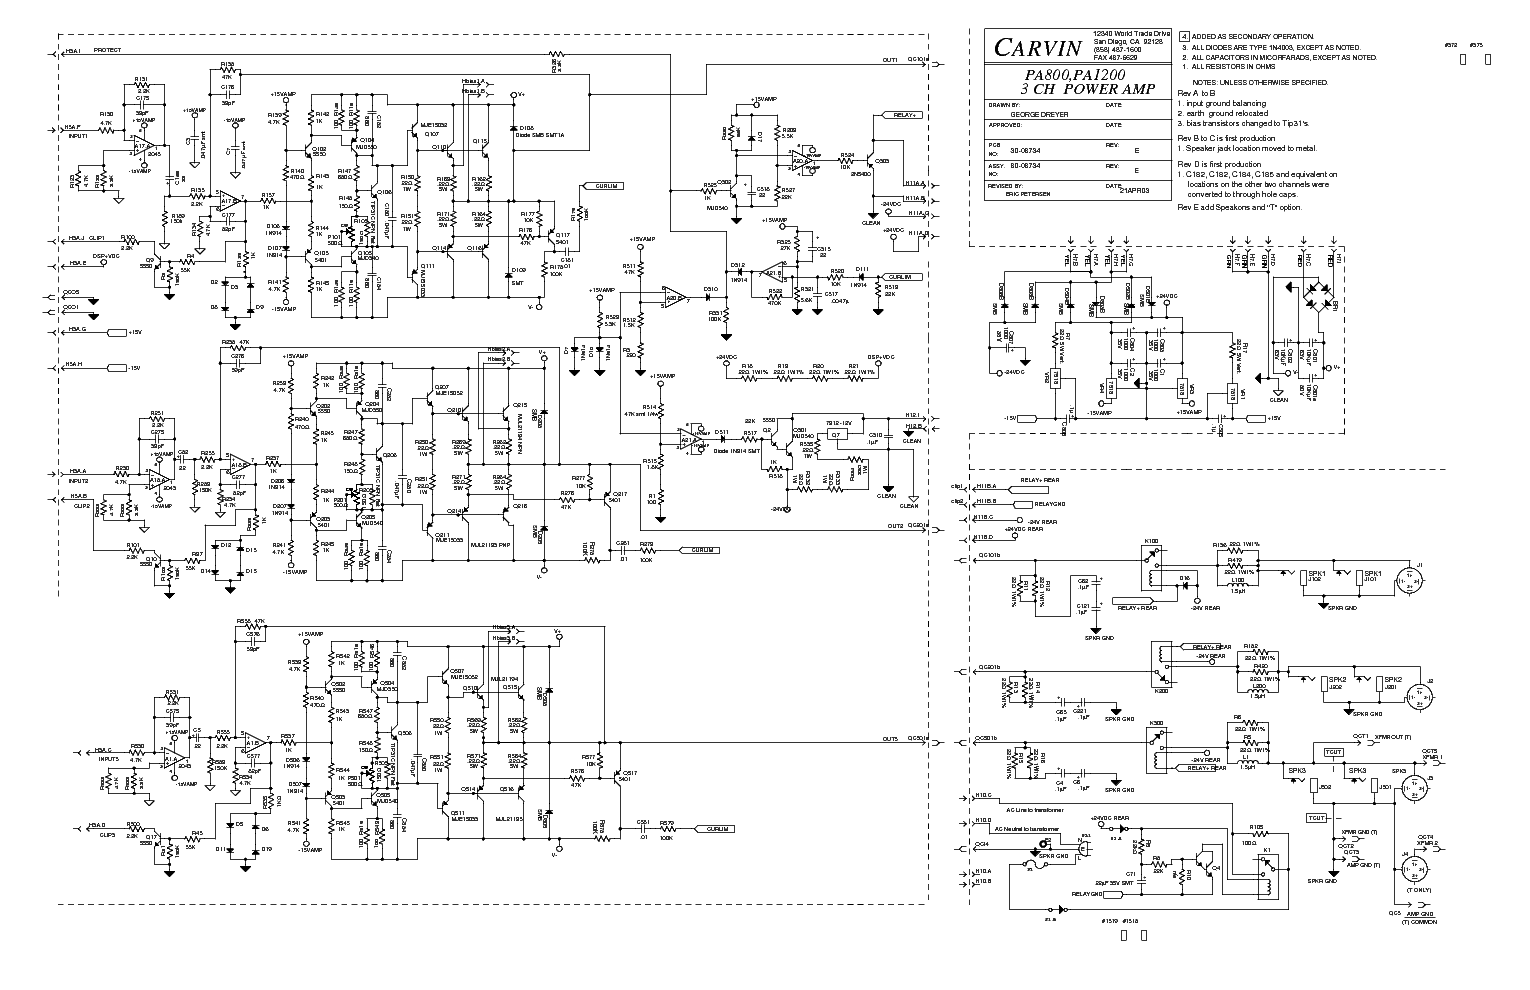 Carvin Legacy Schematic | Wiring Diagram